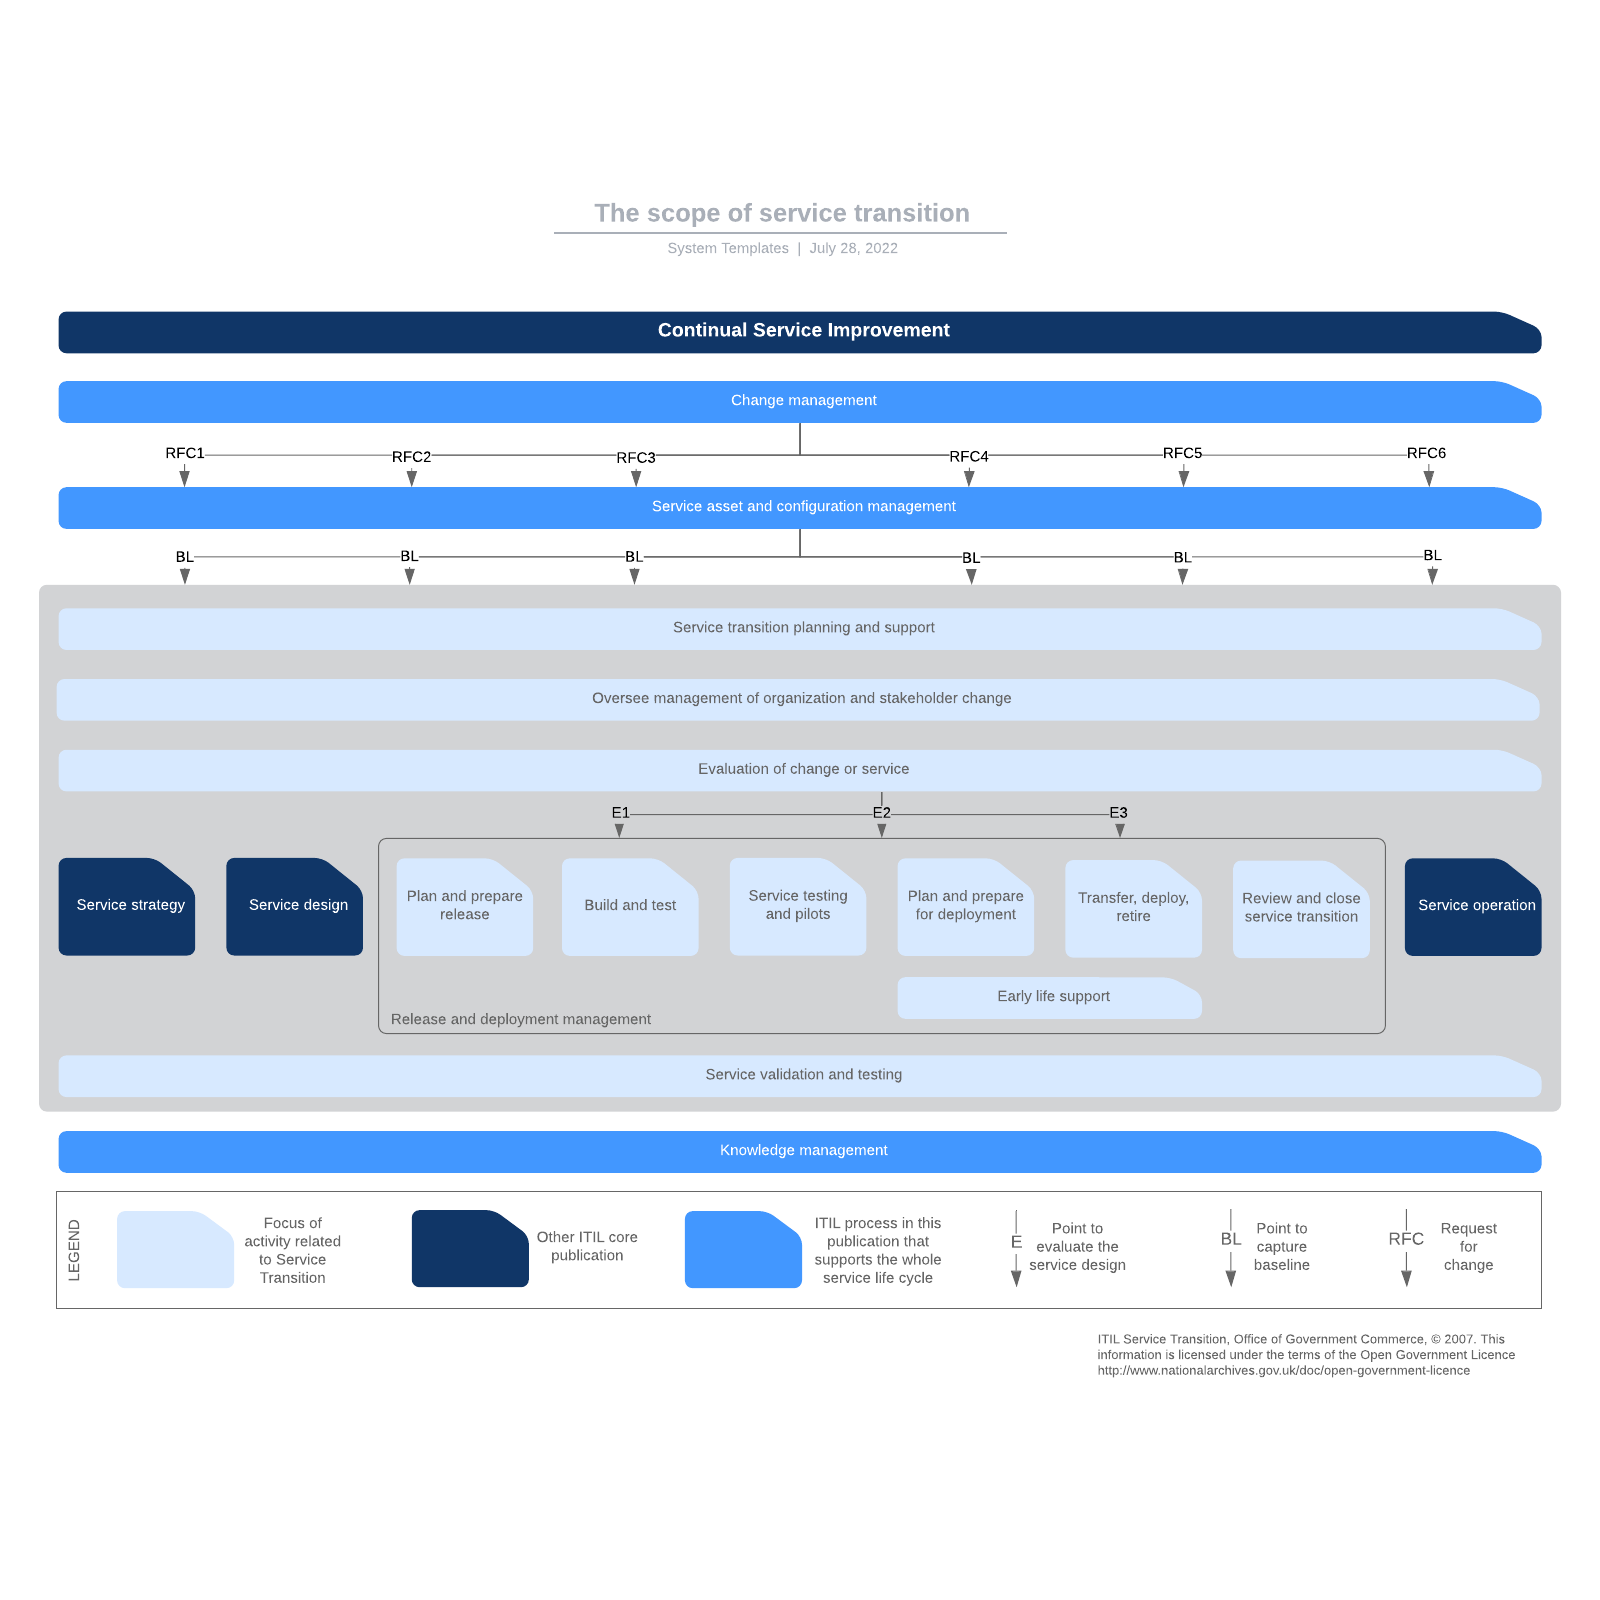 The scope of service transition